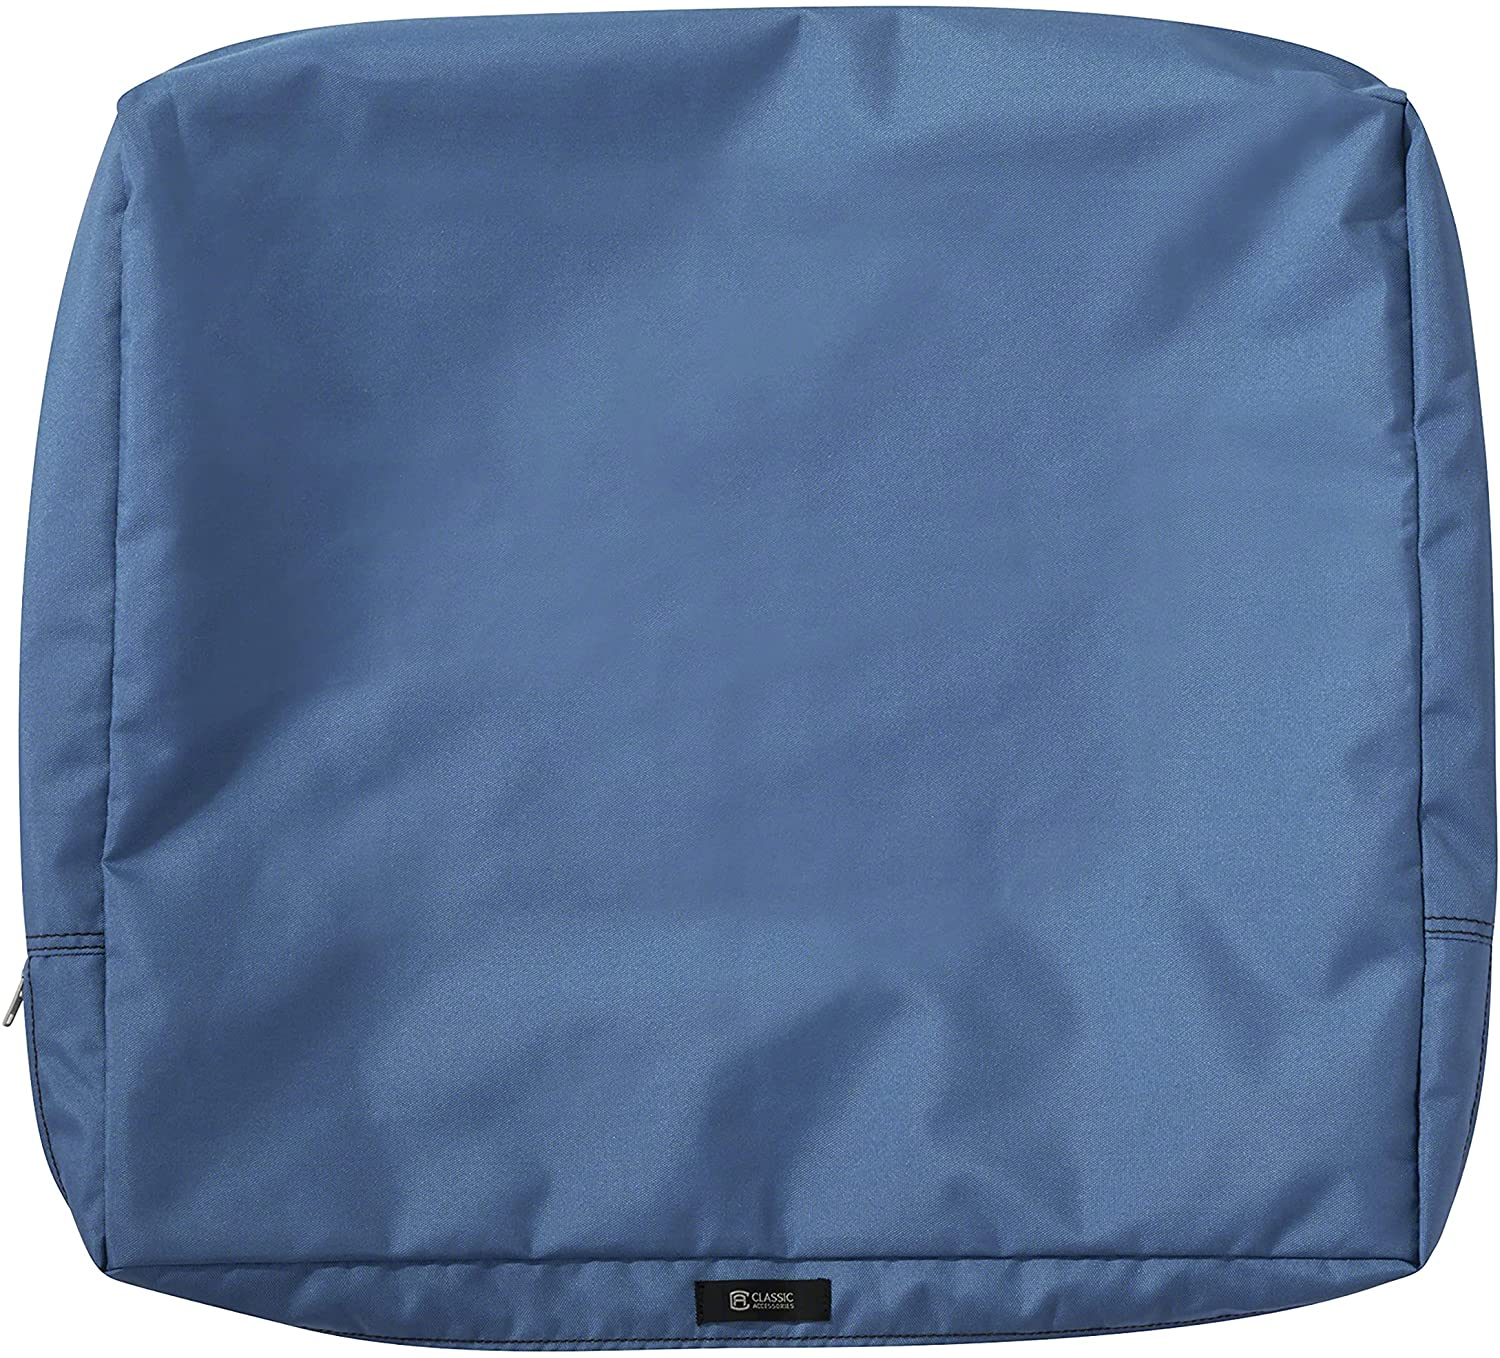 Classic Accessories Ravenna Water-Resistant 23 x 20 x 4 Inch Outdoor Back Cushion Slip Cover, Patio Furniture Cushion Cover, Empire Blue